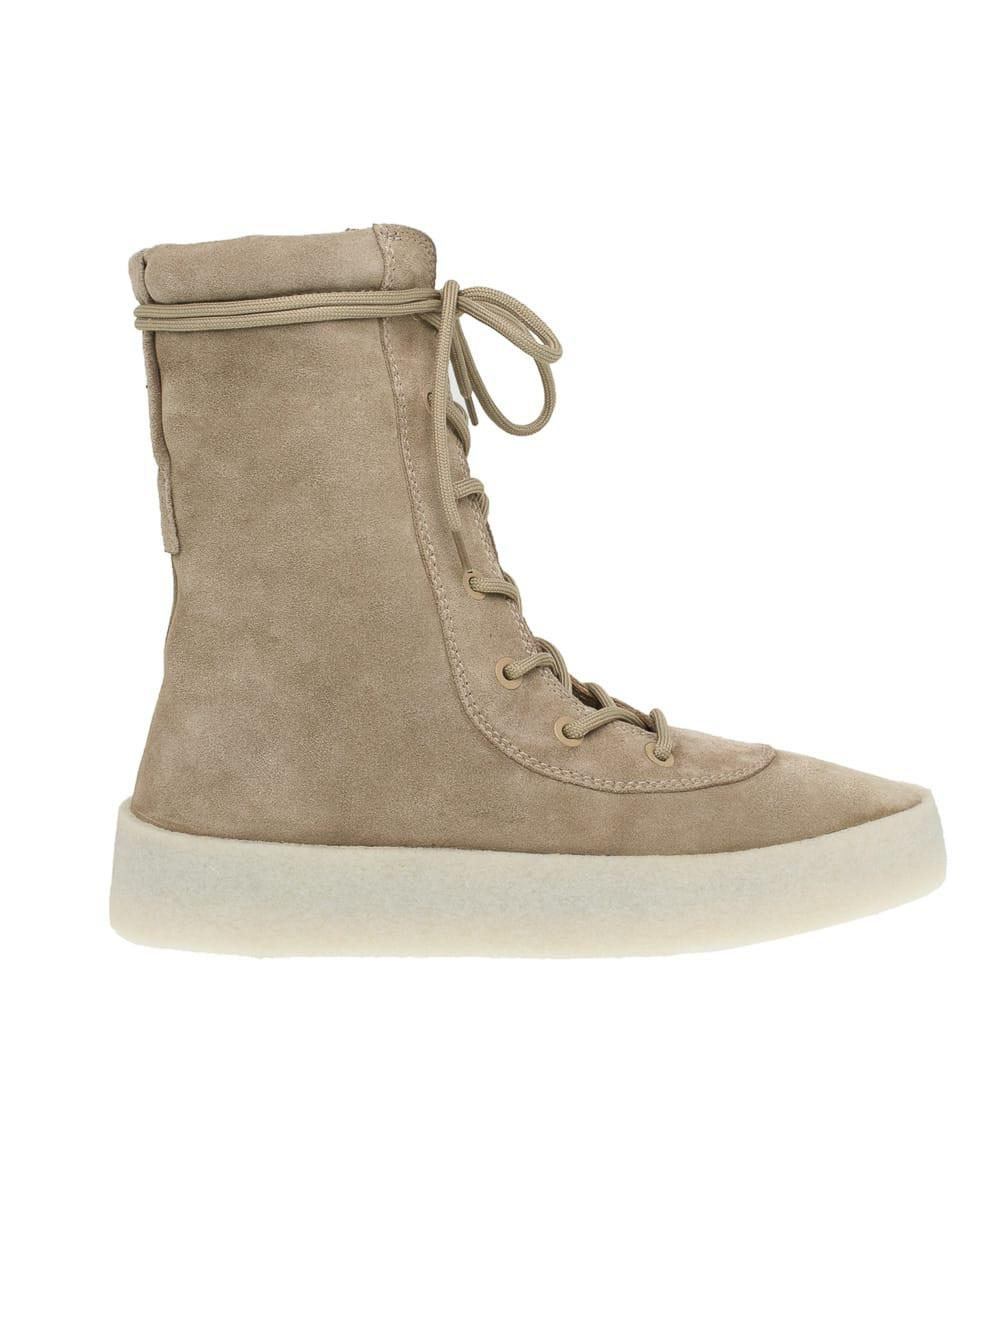 97e83eff663 Lyst - Yeezy Lace-up Boots for Men